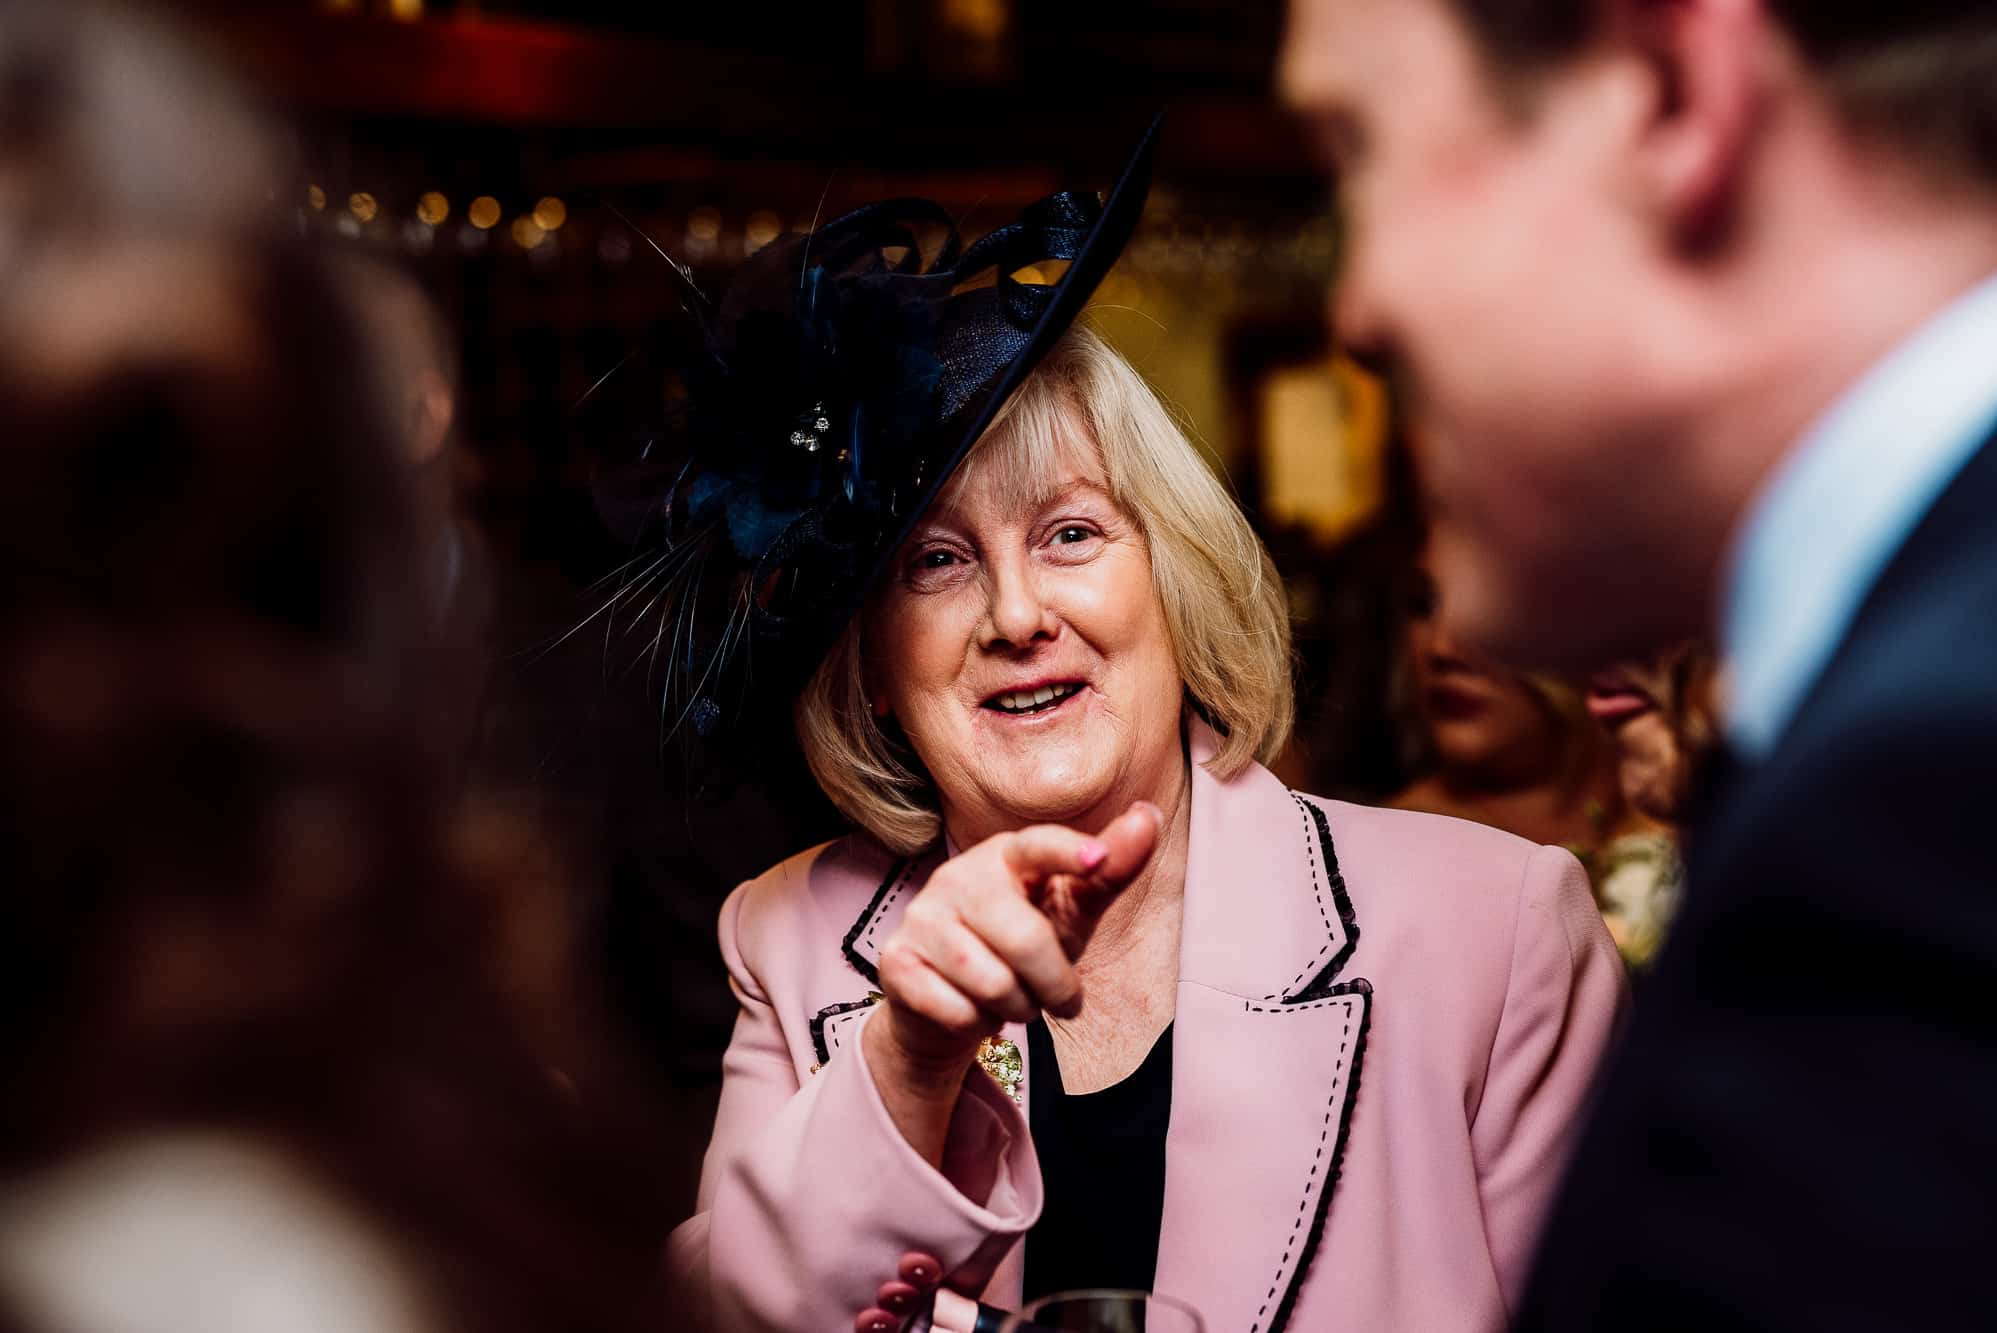 Mother of the bride laughing during reception drinks at the Inn at Whitewell